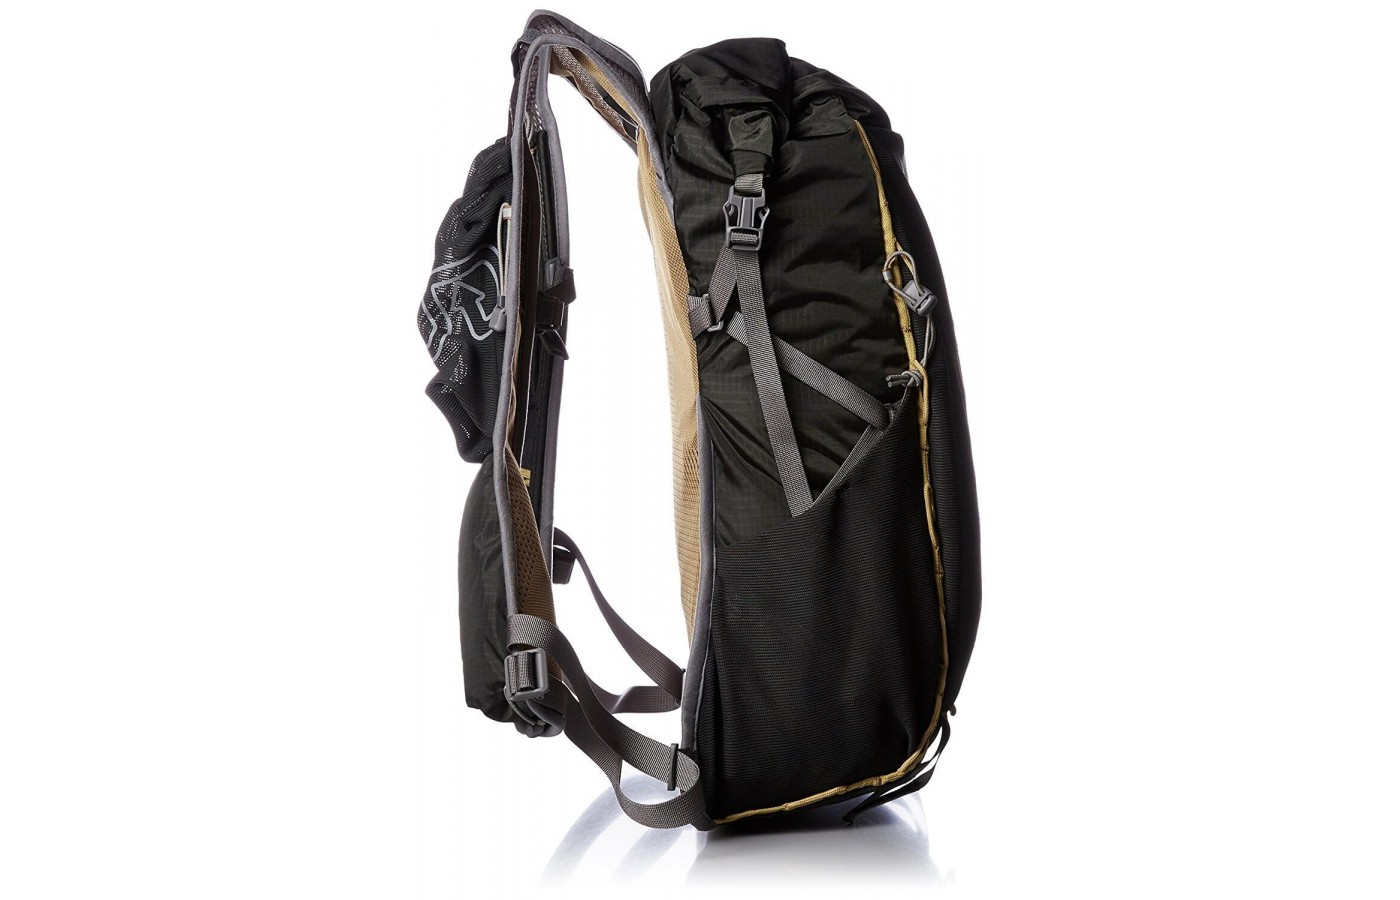 Runners loved the 8 seperate compartments that keep your essential items at your fingertips.